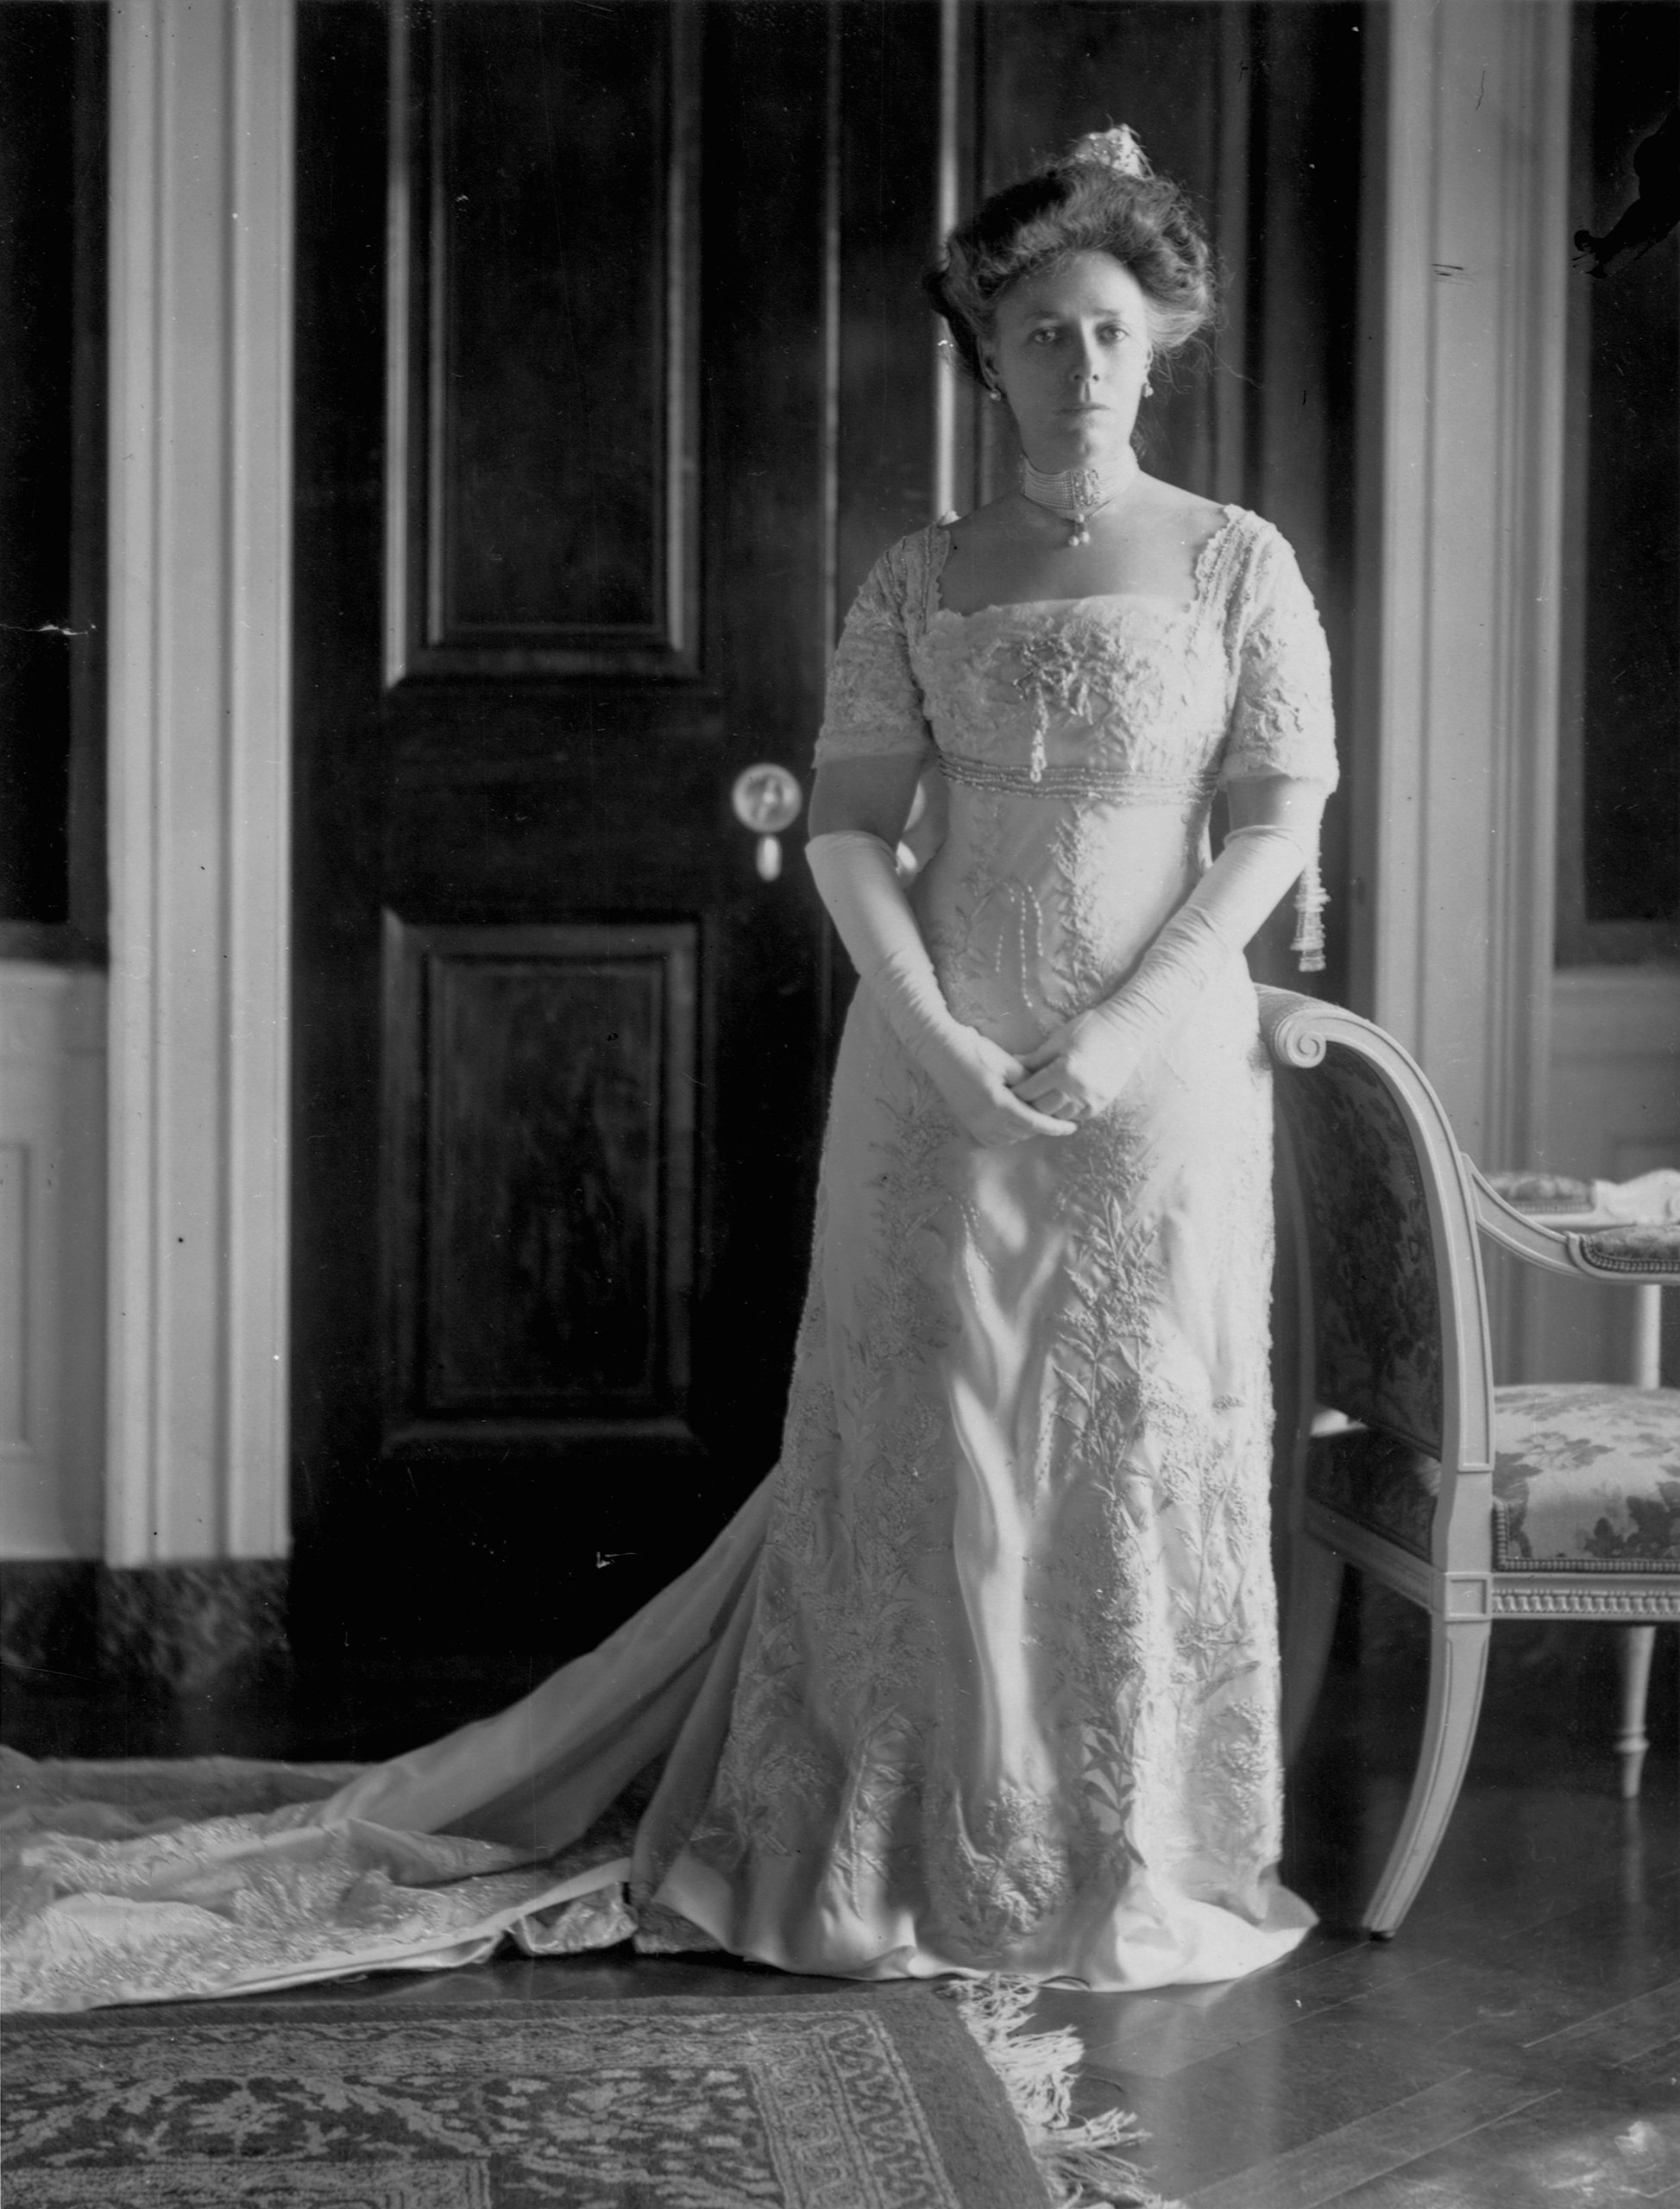 Helen Taft, Frances Smith Company, 1909: This gown is white silk chiffon with floral embroidery and rhinestone and bead trim. She started the tradition of First Ladies selecting their inaugural dress and then donating it to the Smithsonian's First Ladies Collection.